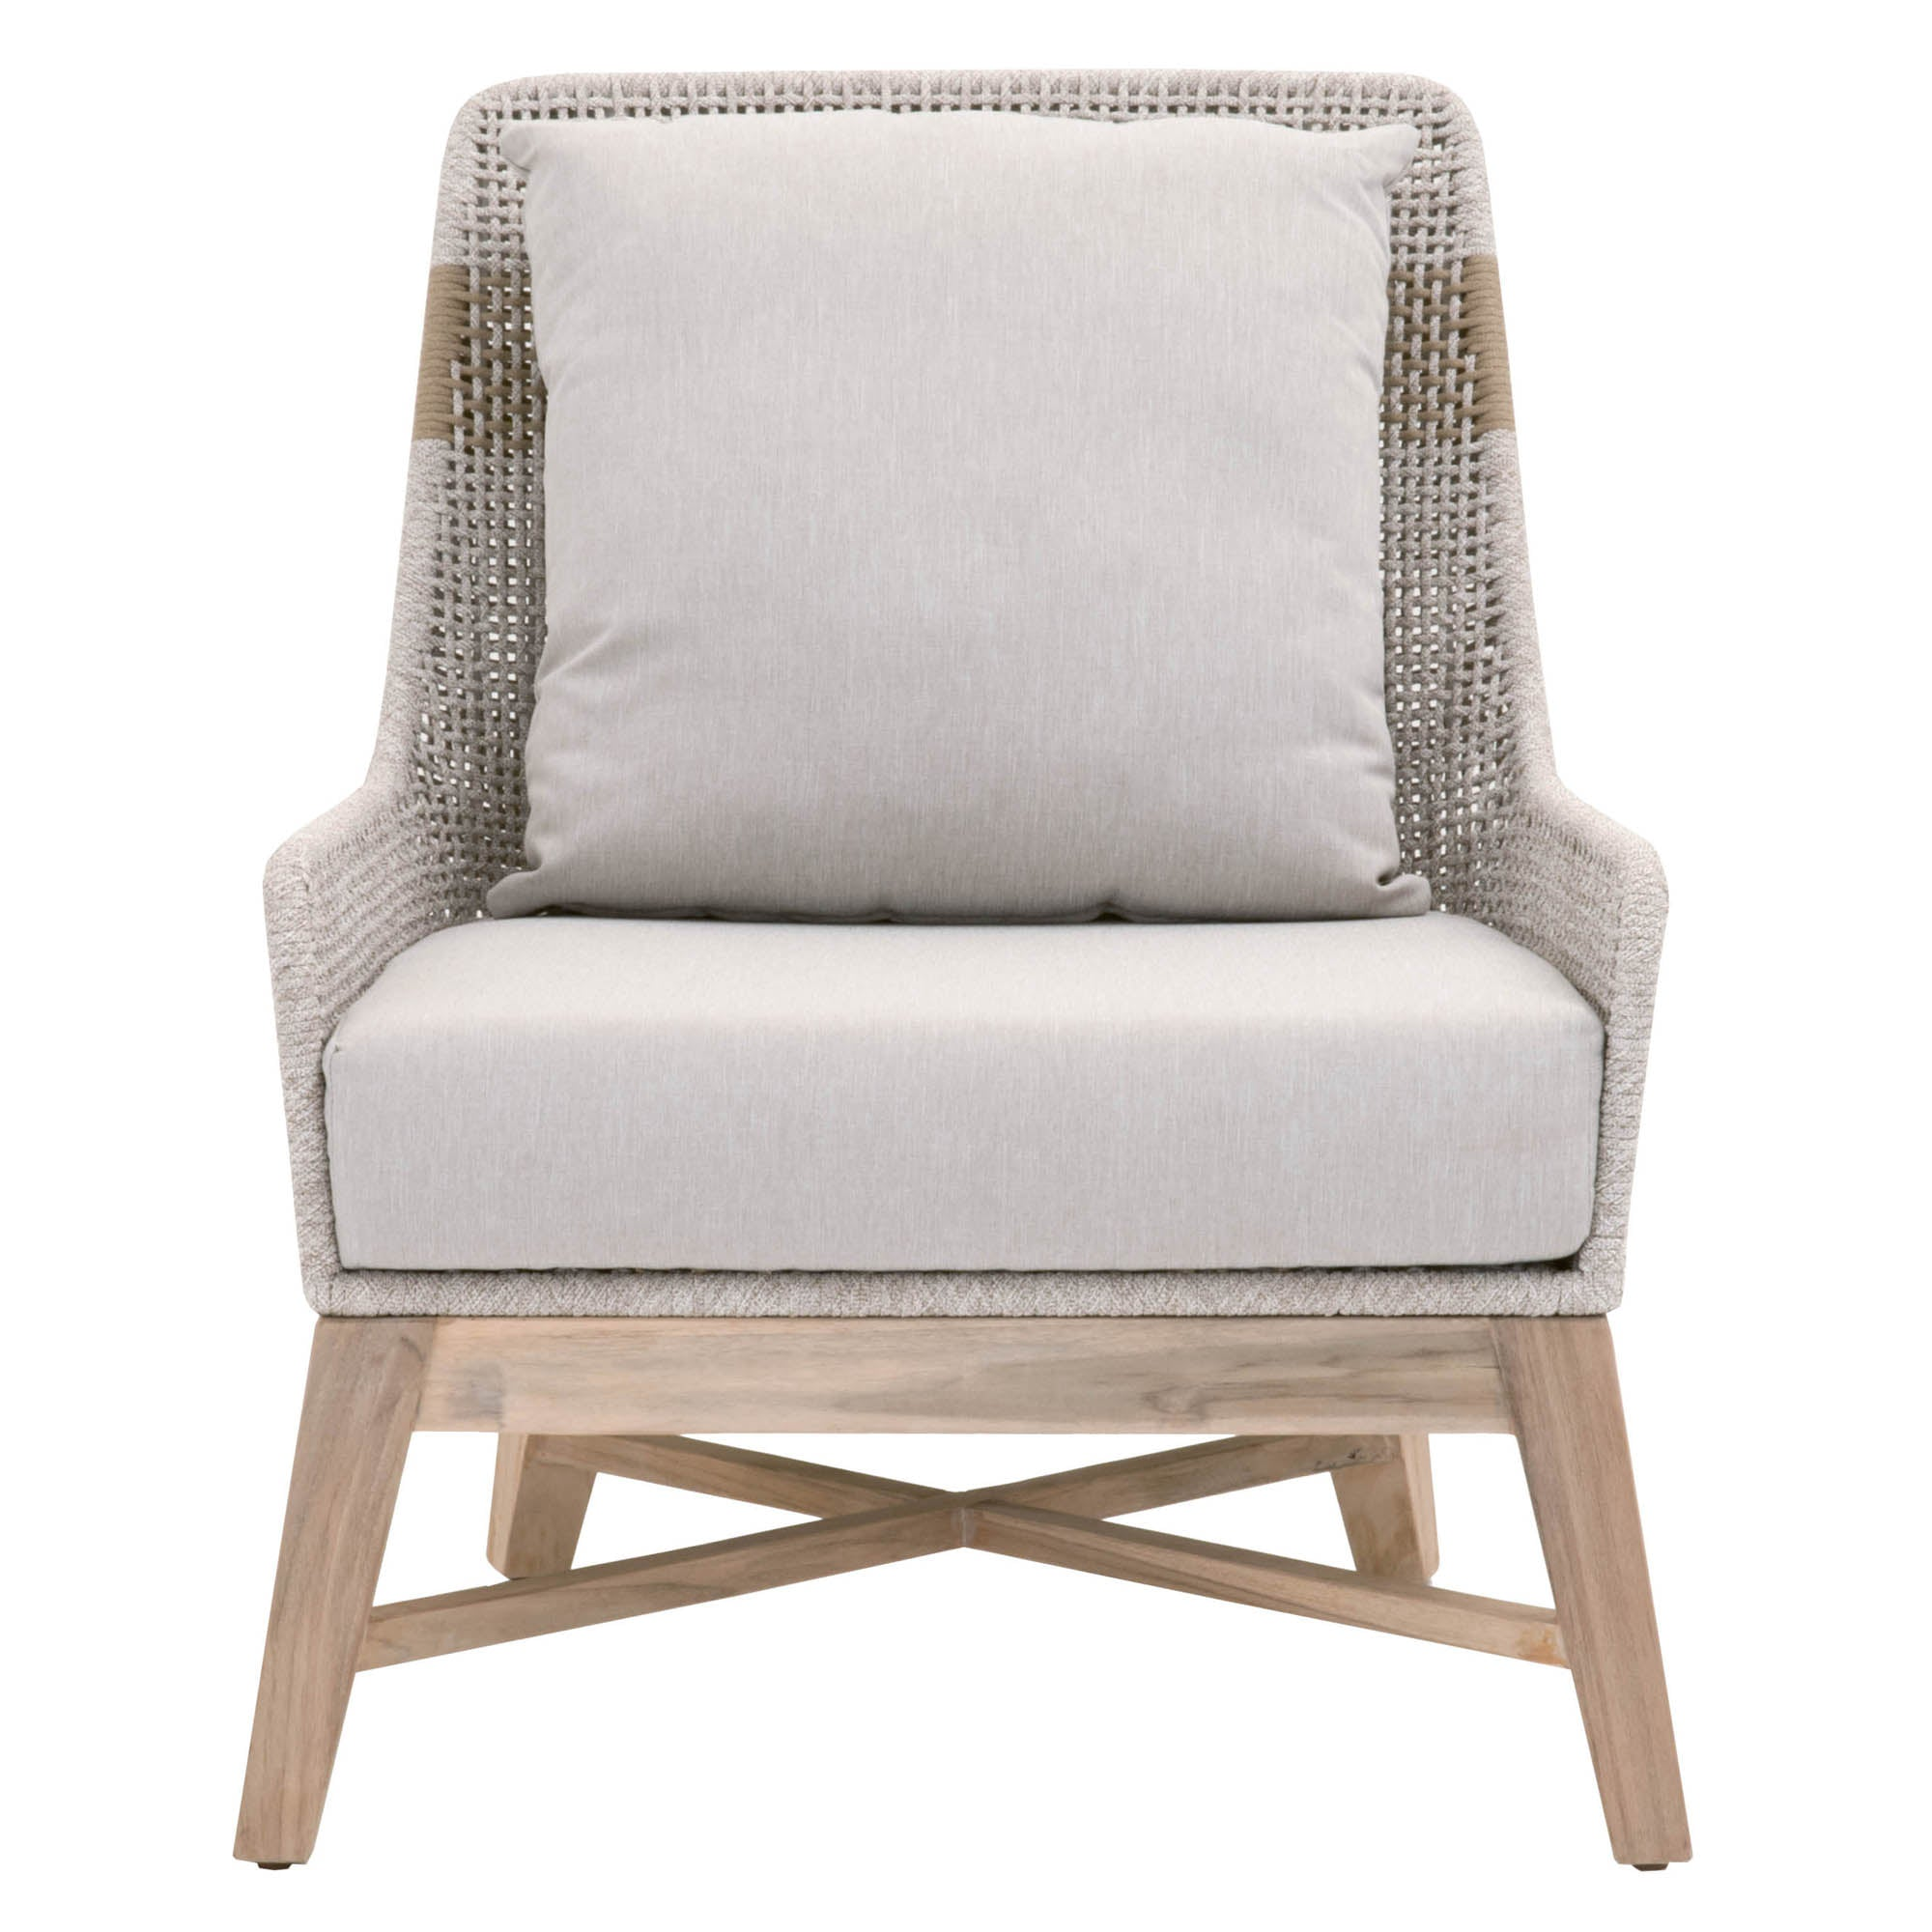 Essentials for Living-Tapestry Outdoor Club Chair-Outdoor Lounge Chairs-MODTEMPO